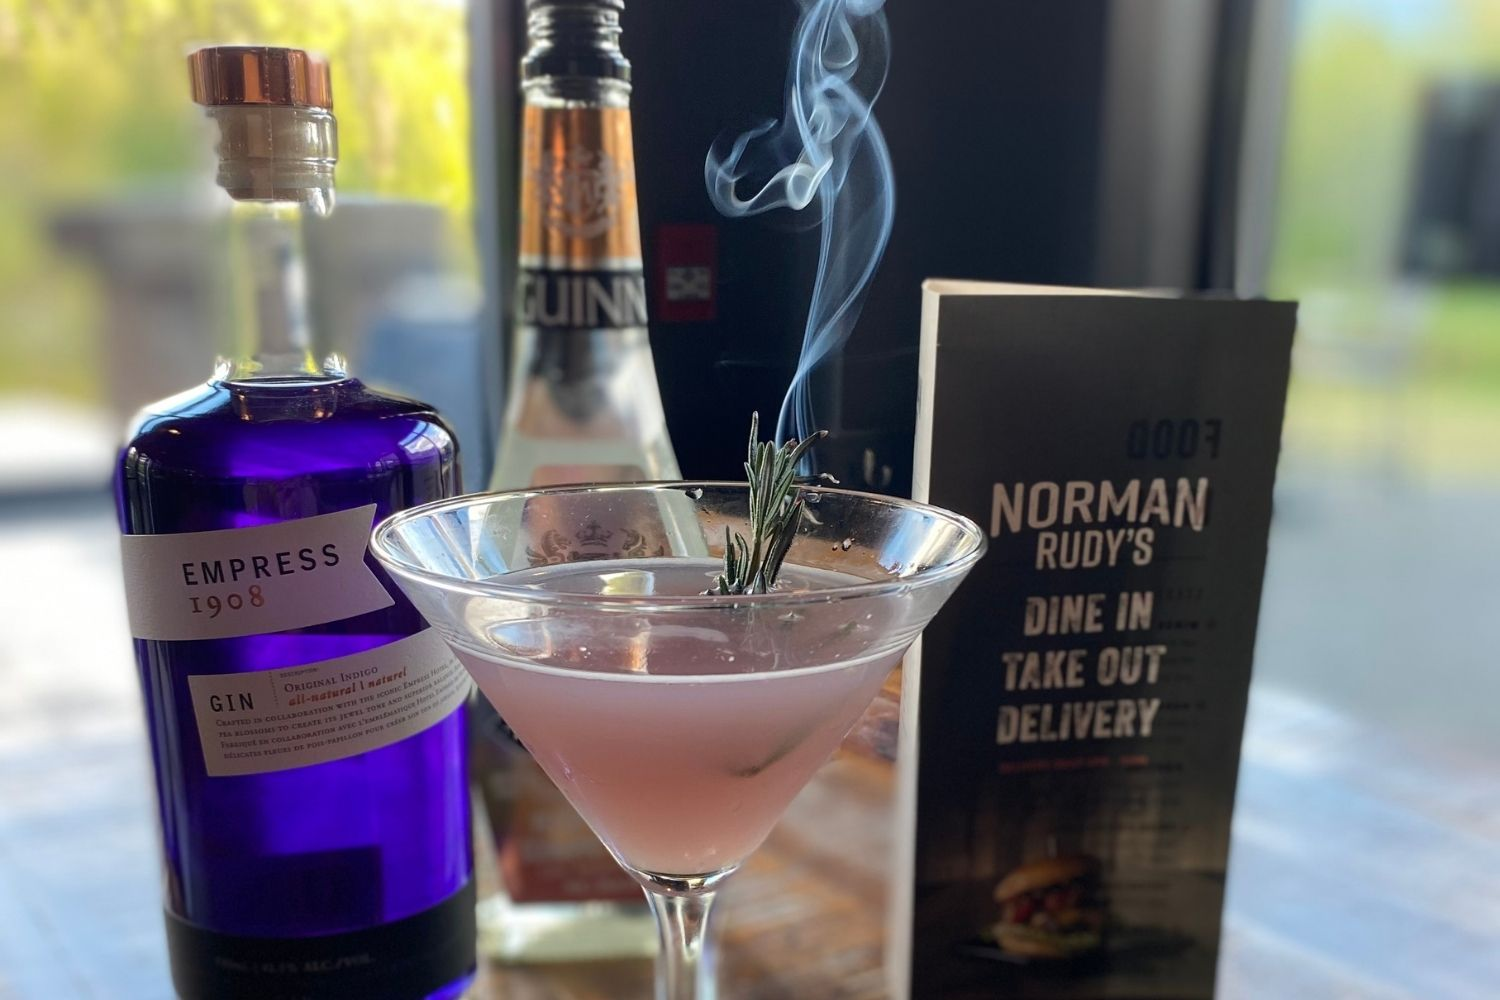 Norman Rudy's cocktail